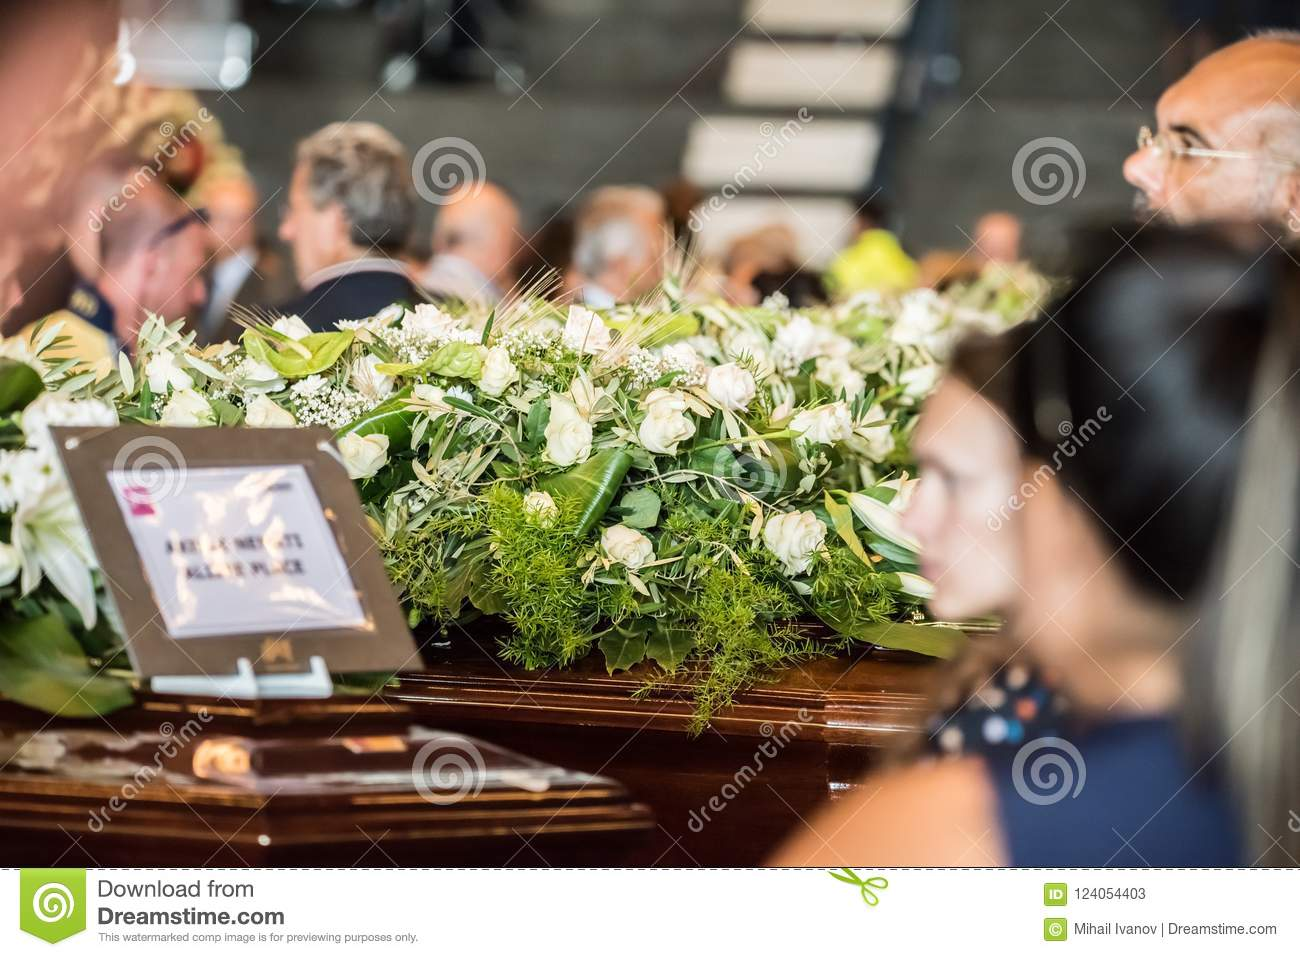 Funeral held for the victims of the morandi bridge genoa editorial a catholic ceremony held in the city of genova italy the funeral of the victims fallen during the collapse of the morandi bridge crowd of people with izmirmasajfo